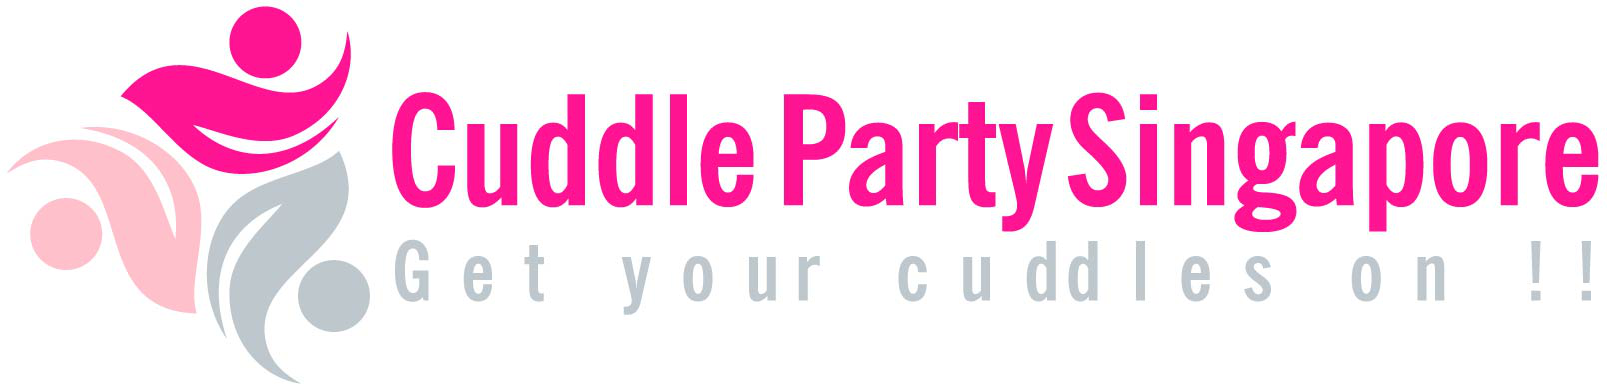 Cuddle Party Singapore Logo